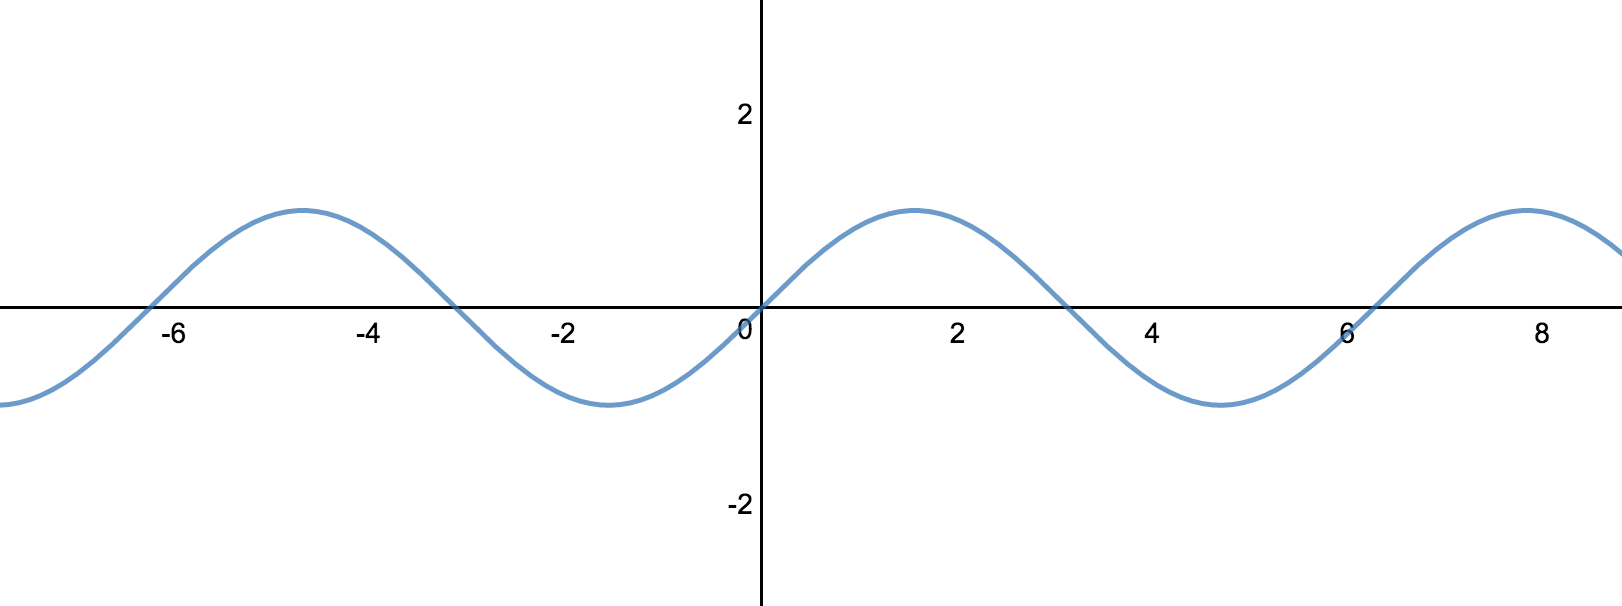 Sin of x function